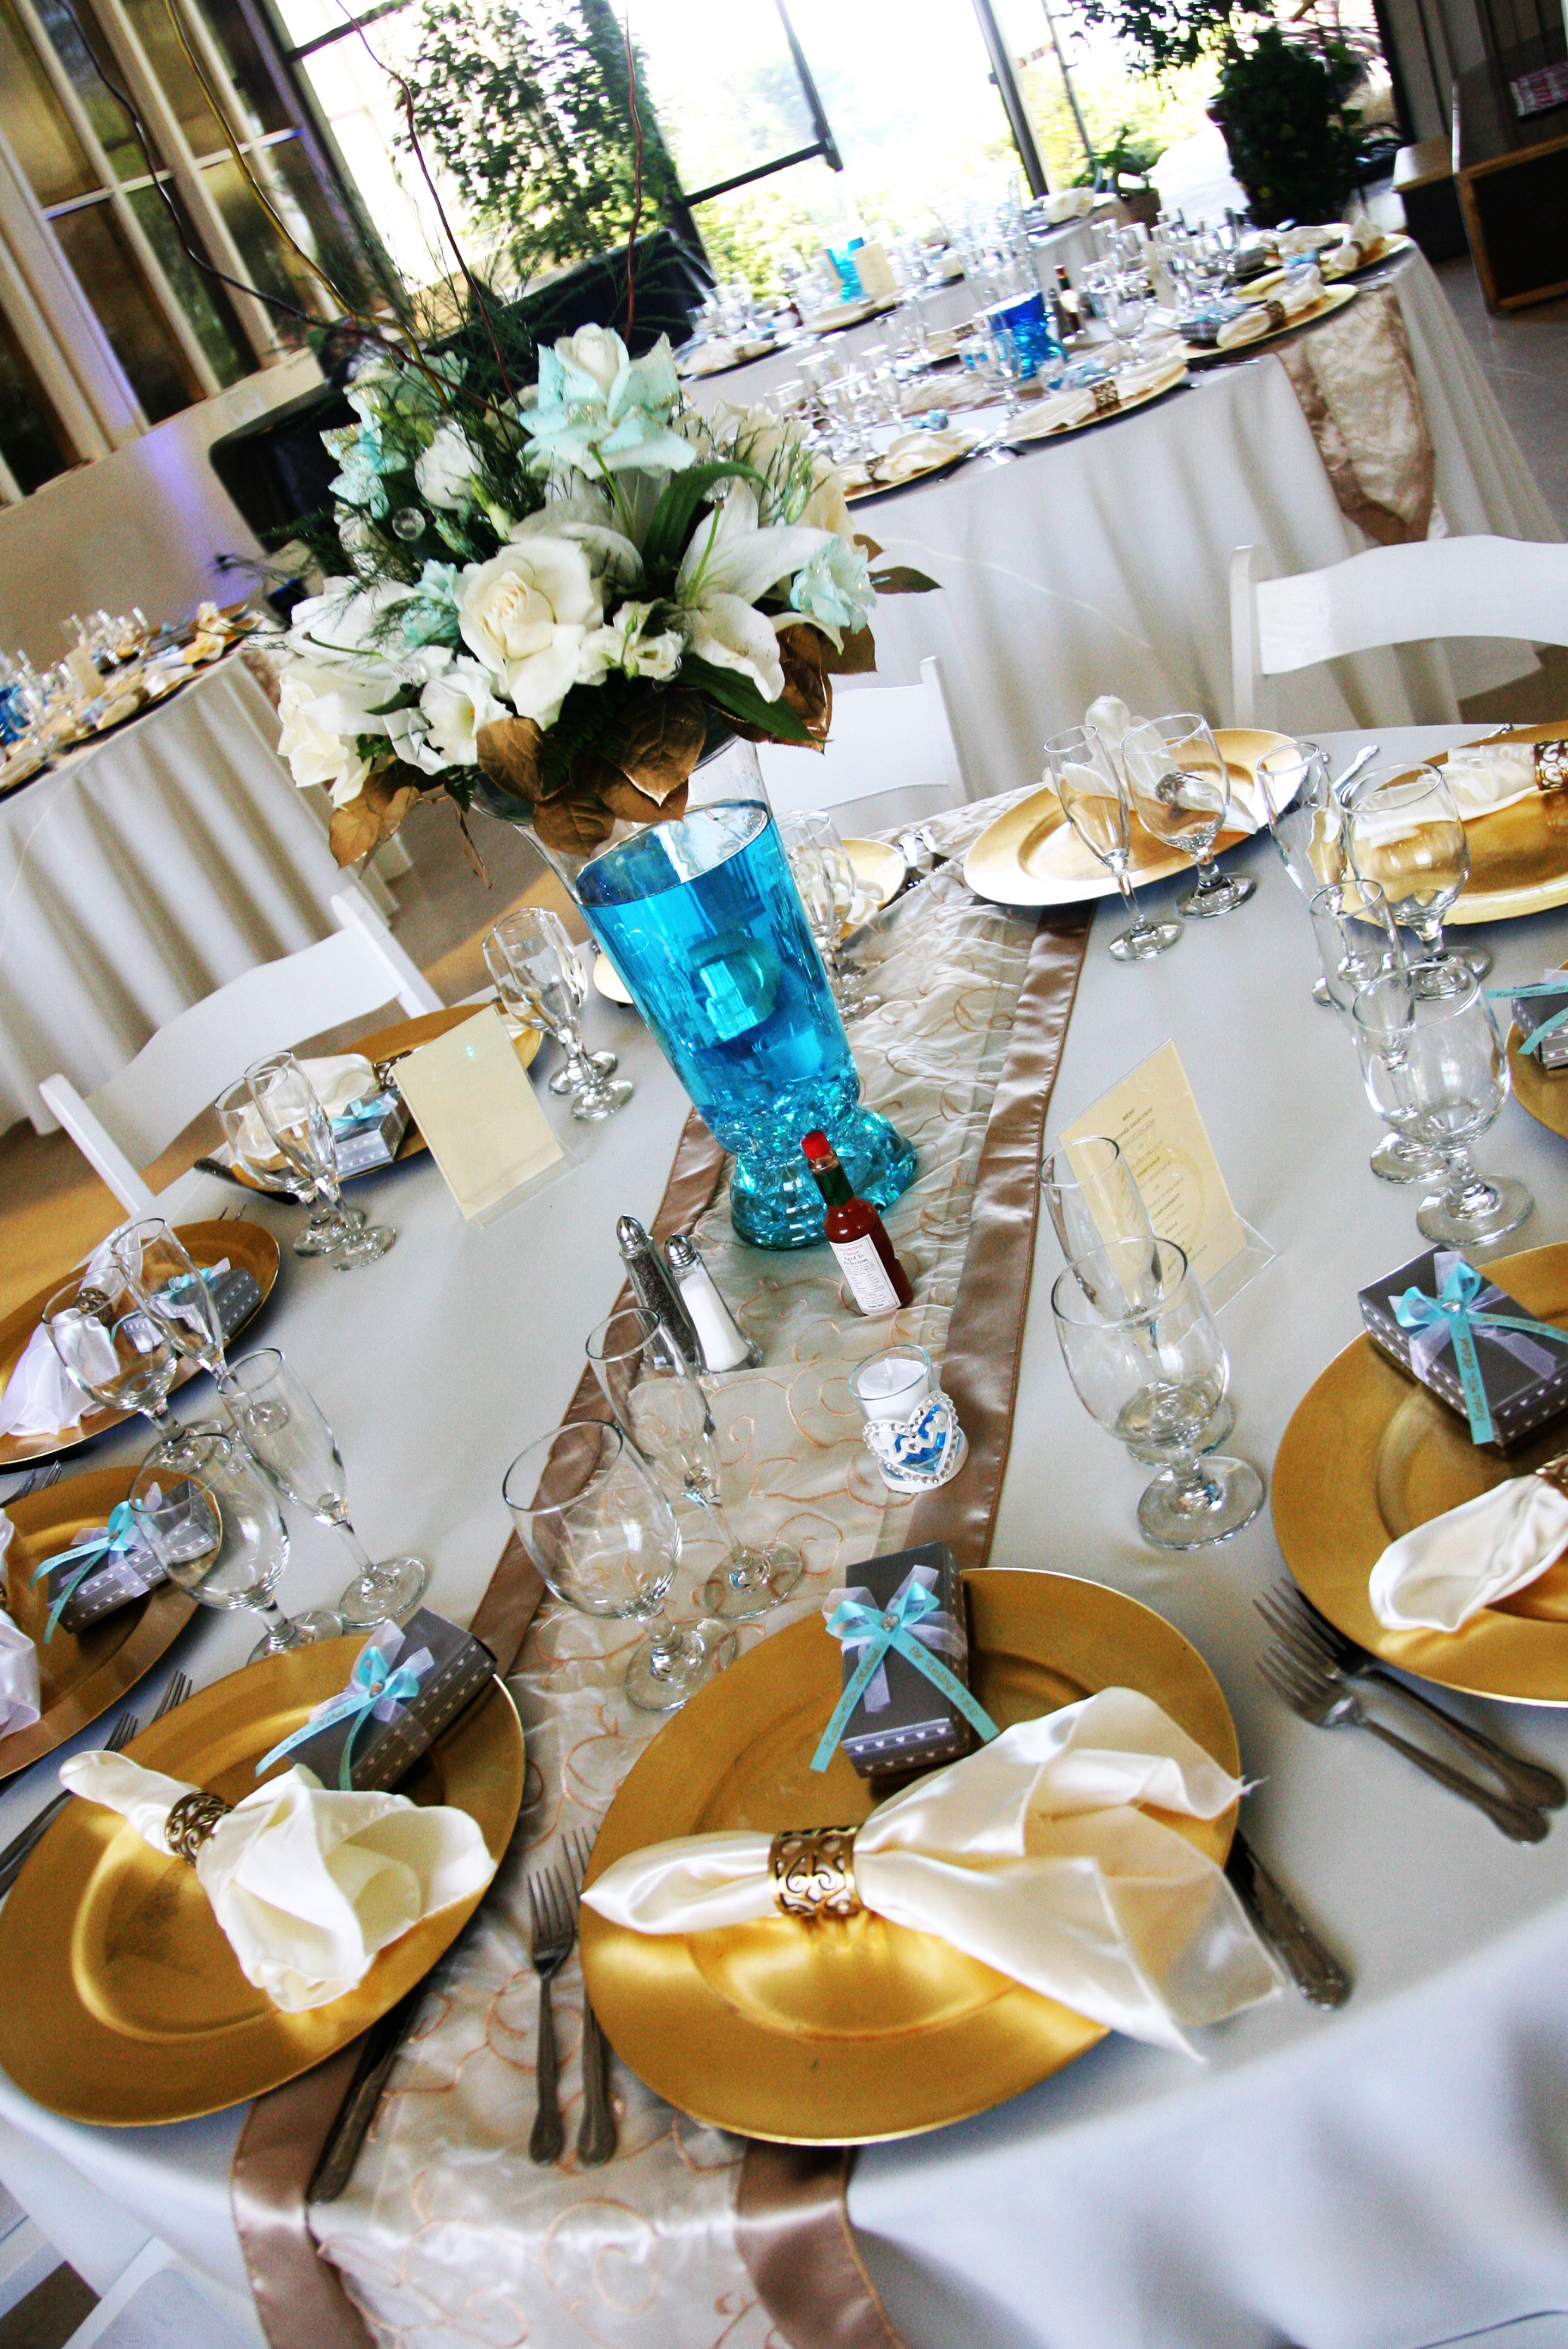 Reception, Flowers & Decor, Favors & Gifts, white, blue, gold, Favors, Flowers